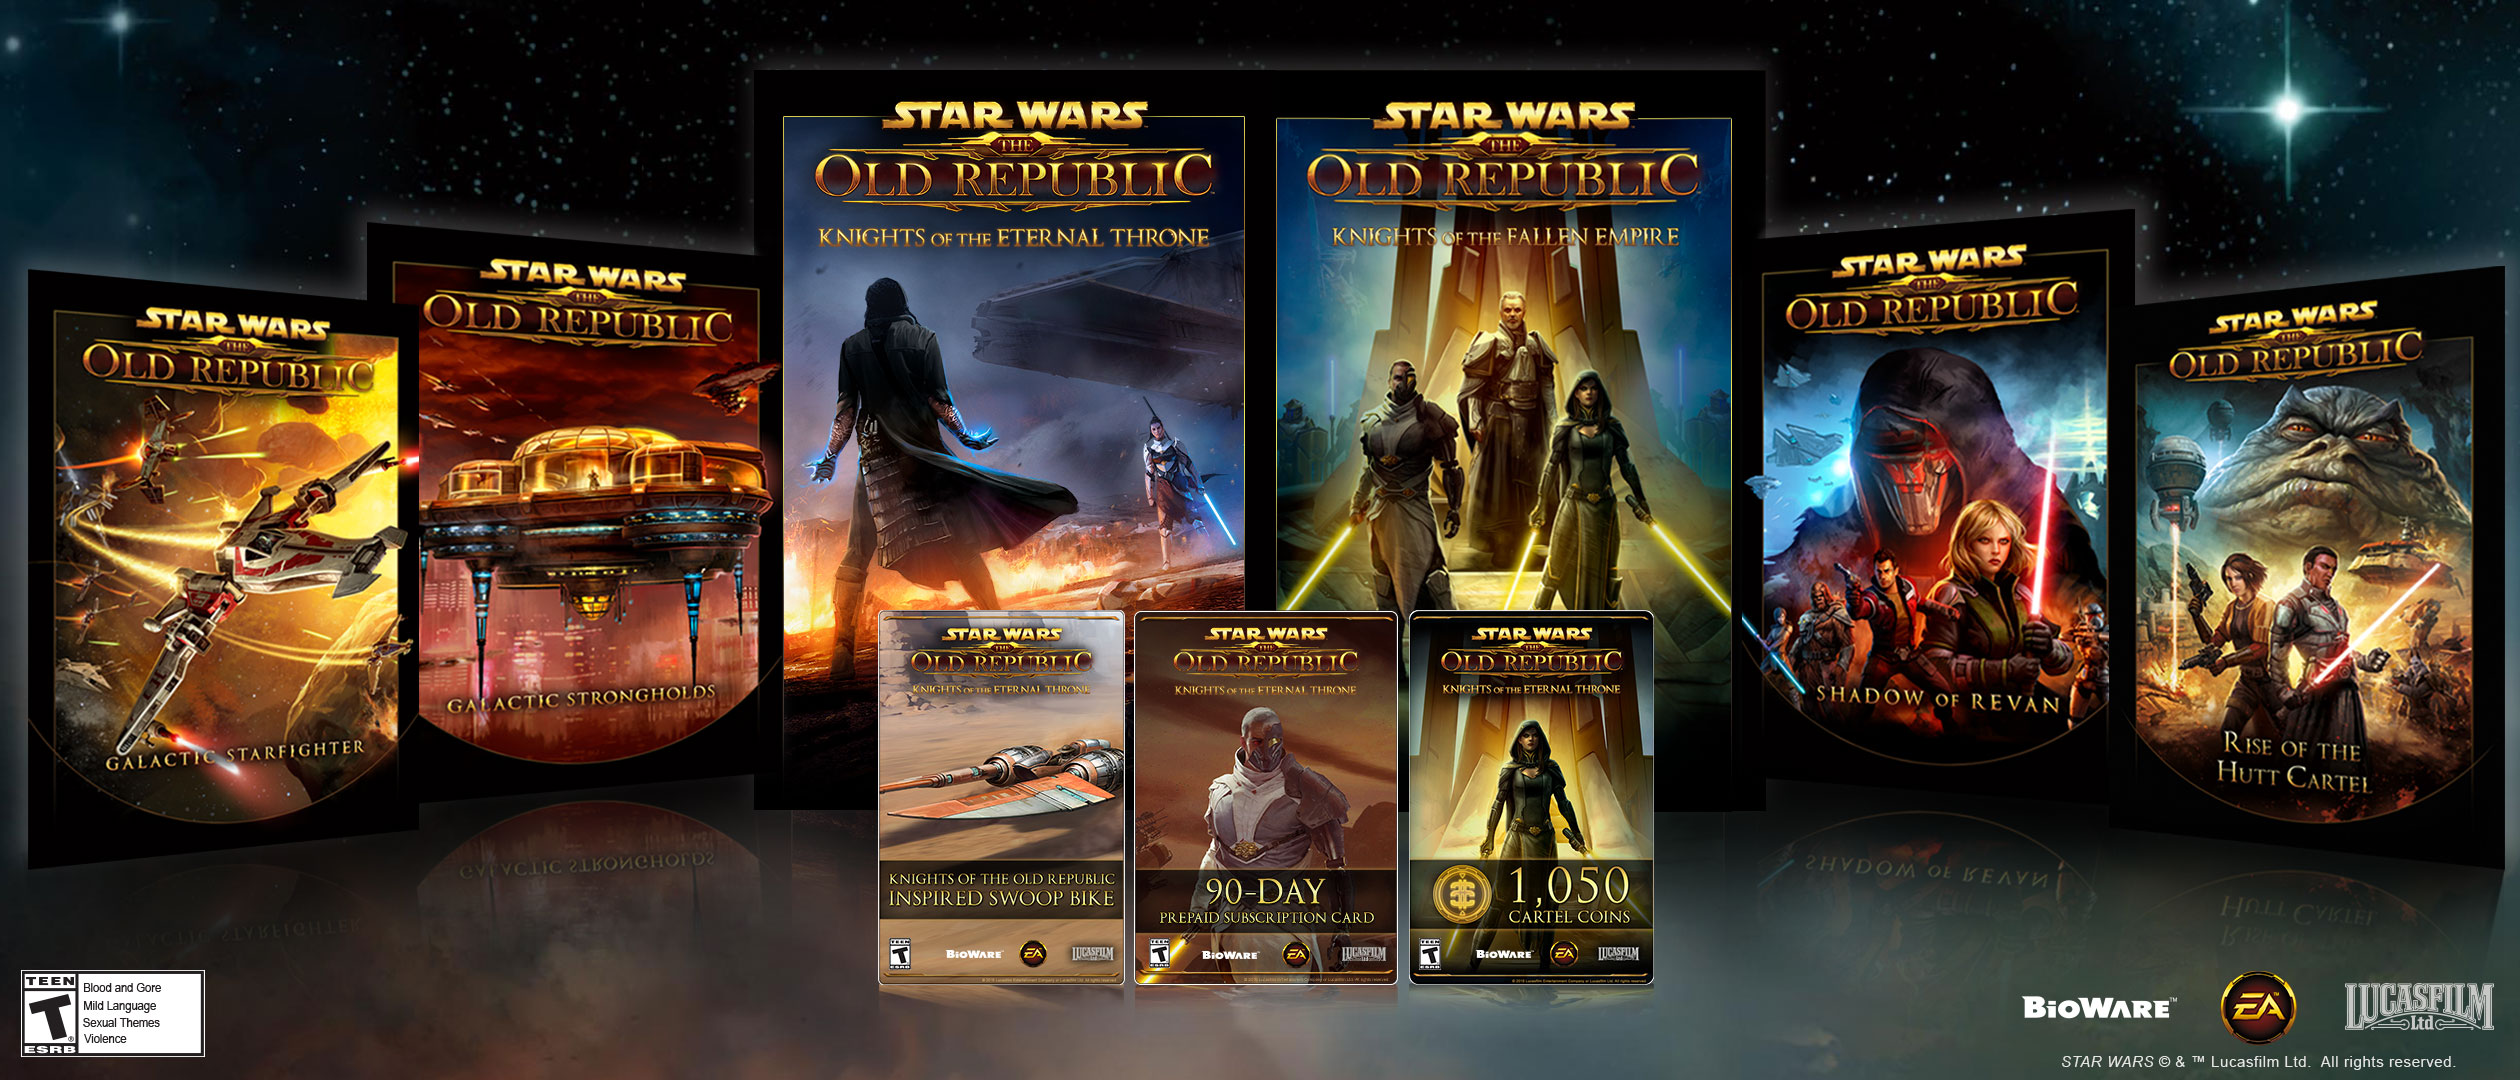 Star Wars  The Old Republic   Knights Of The Eternal Throne   Amazon Premium Pack  Online Game Code